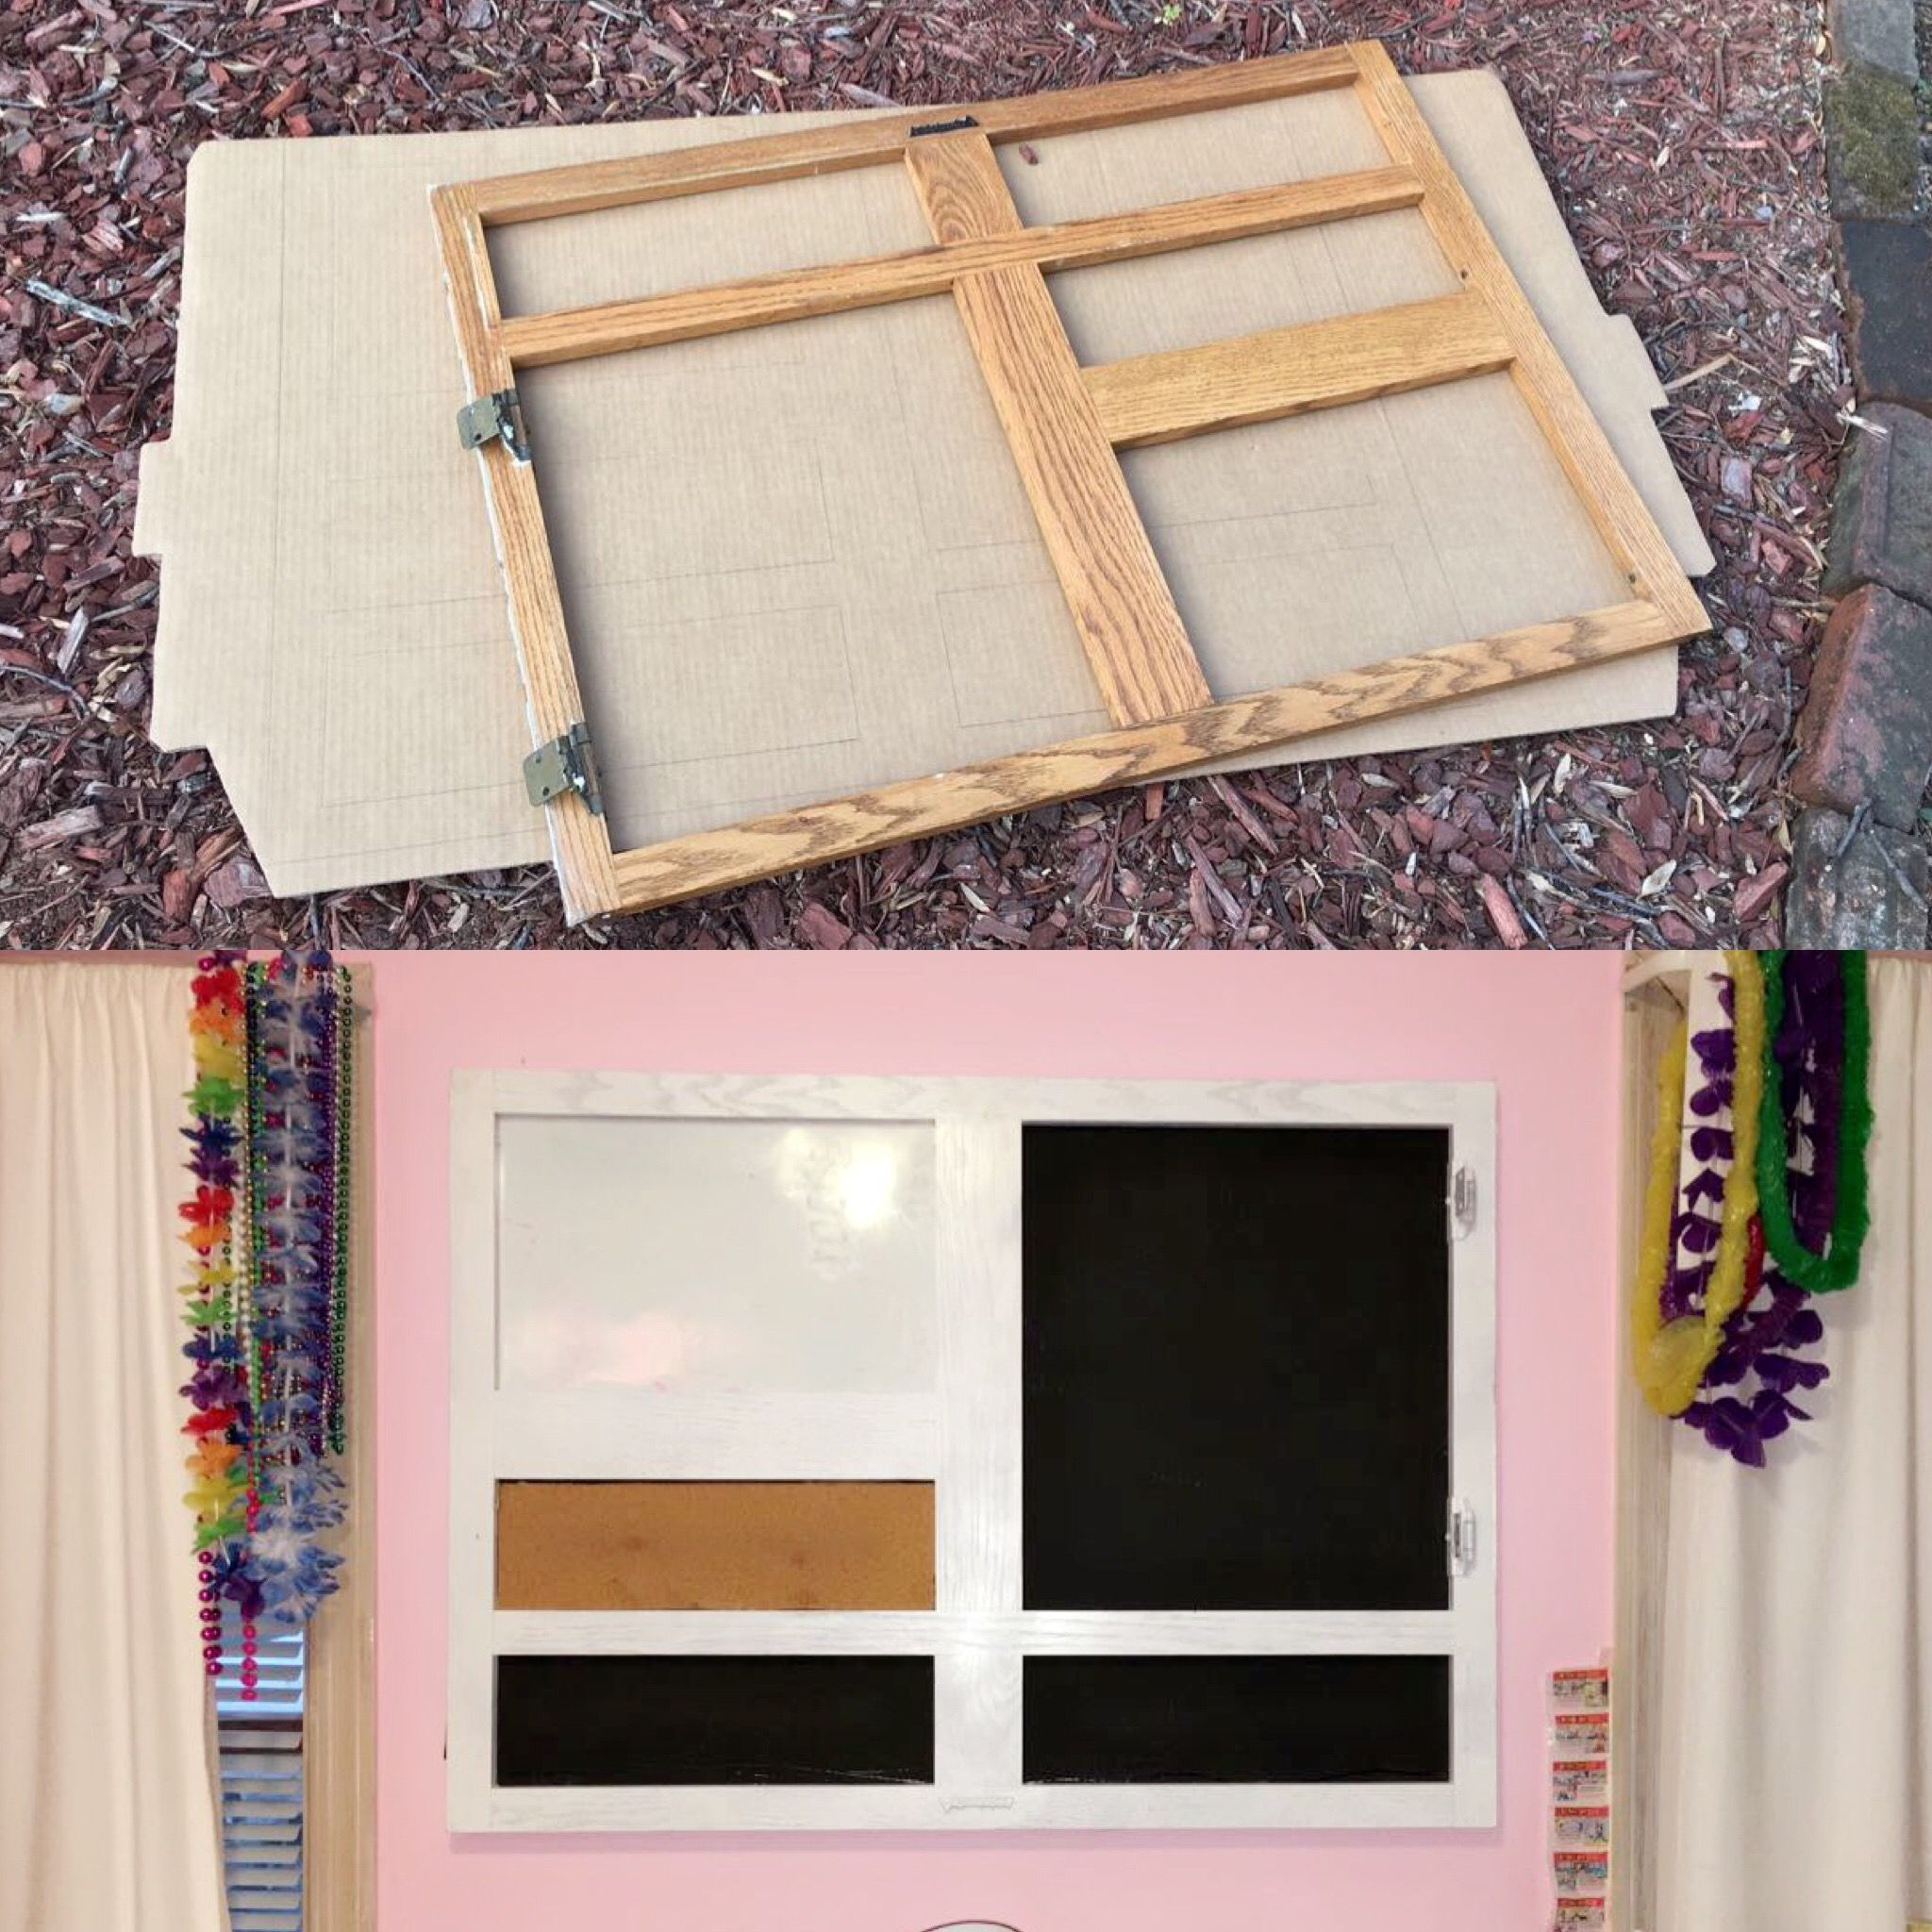 Old cabinet front turned into wall decoration whiteboard corkboard